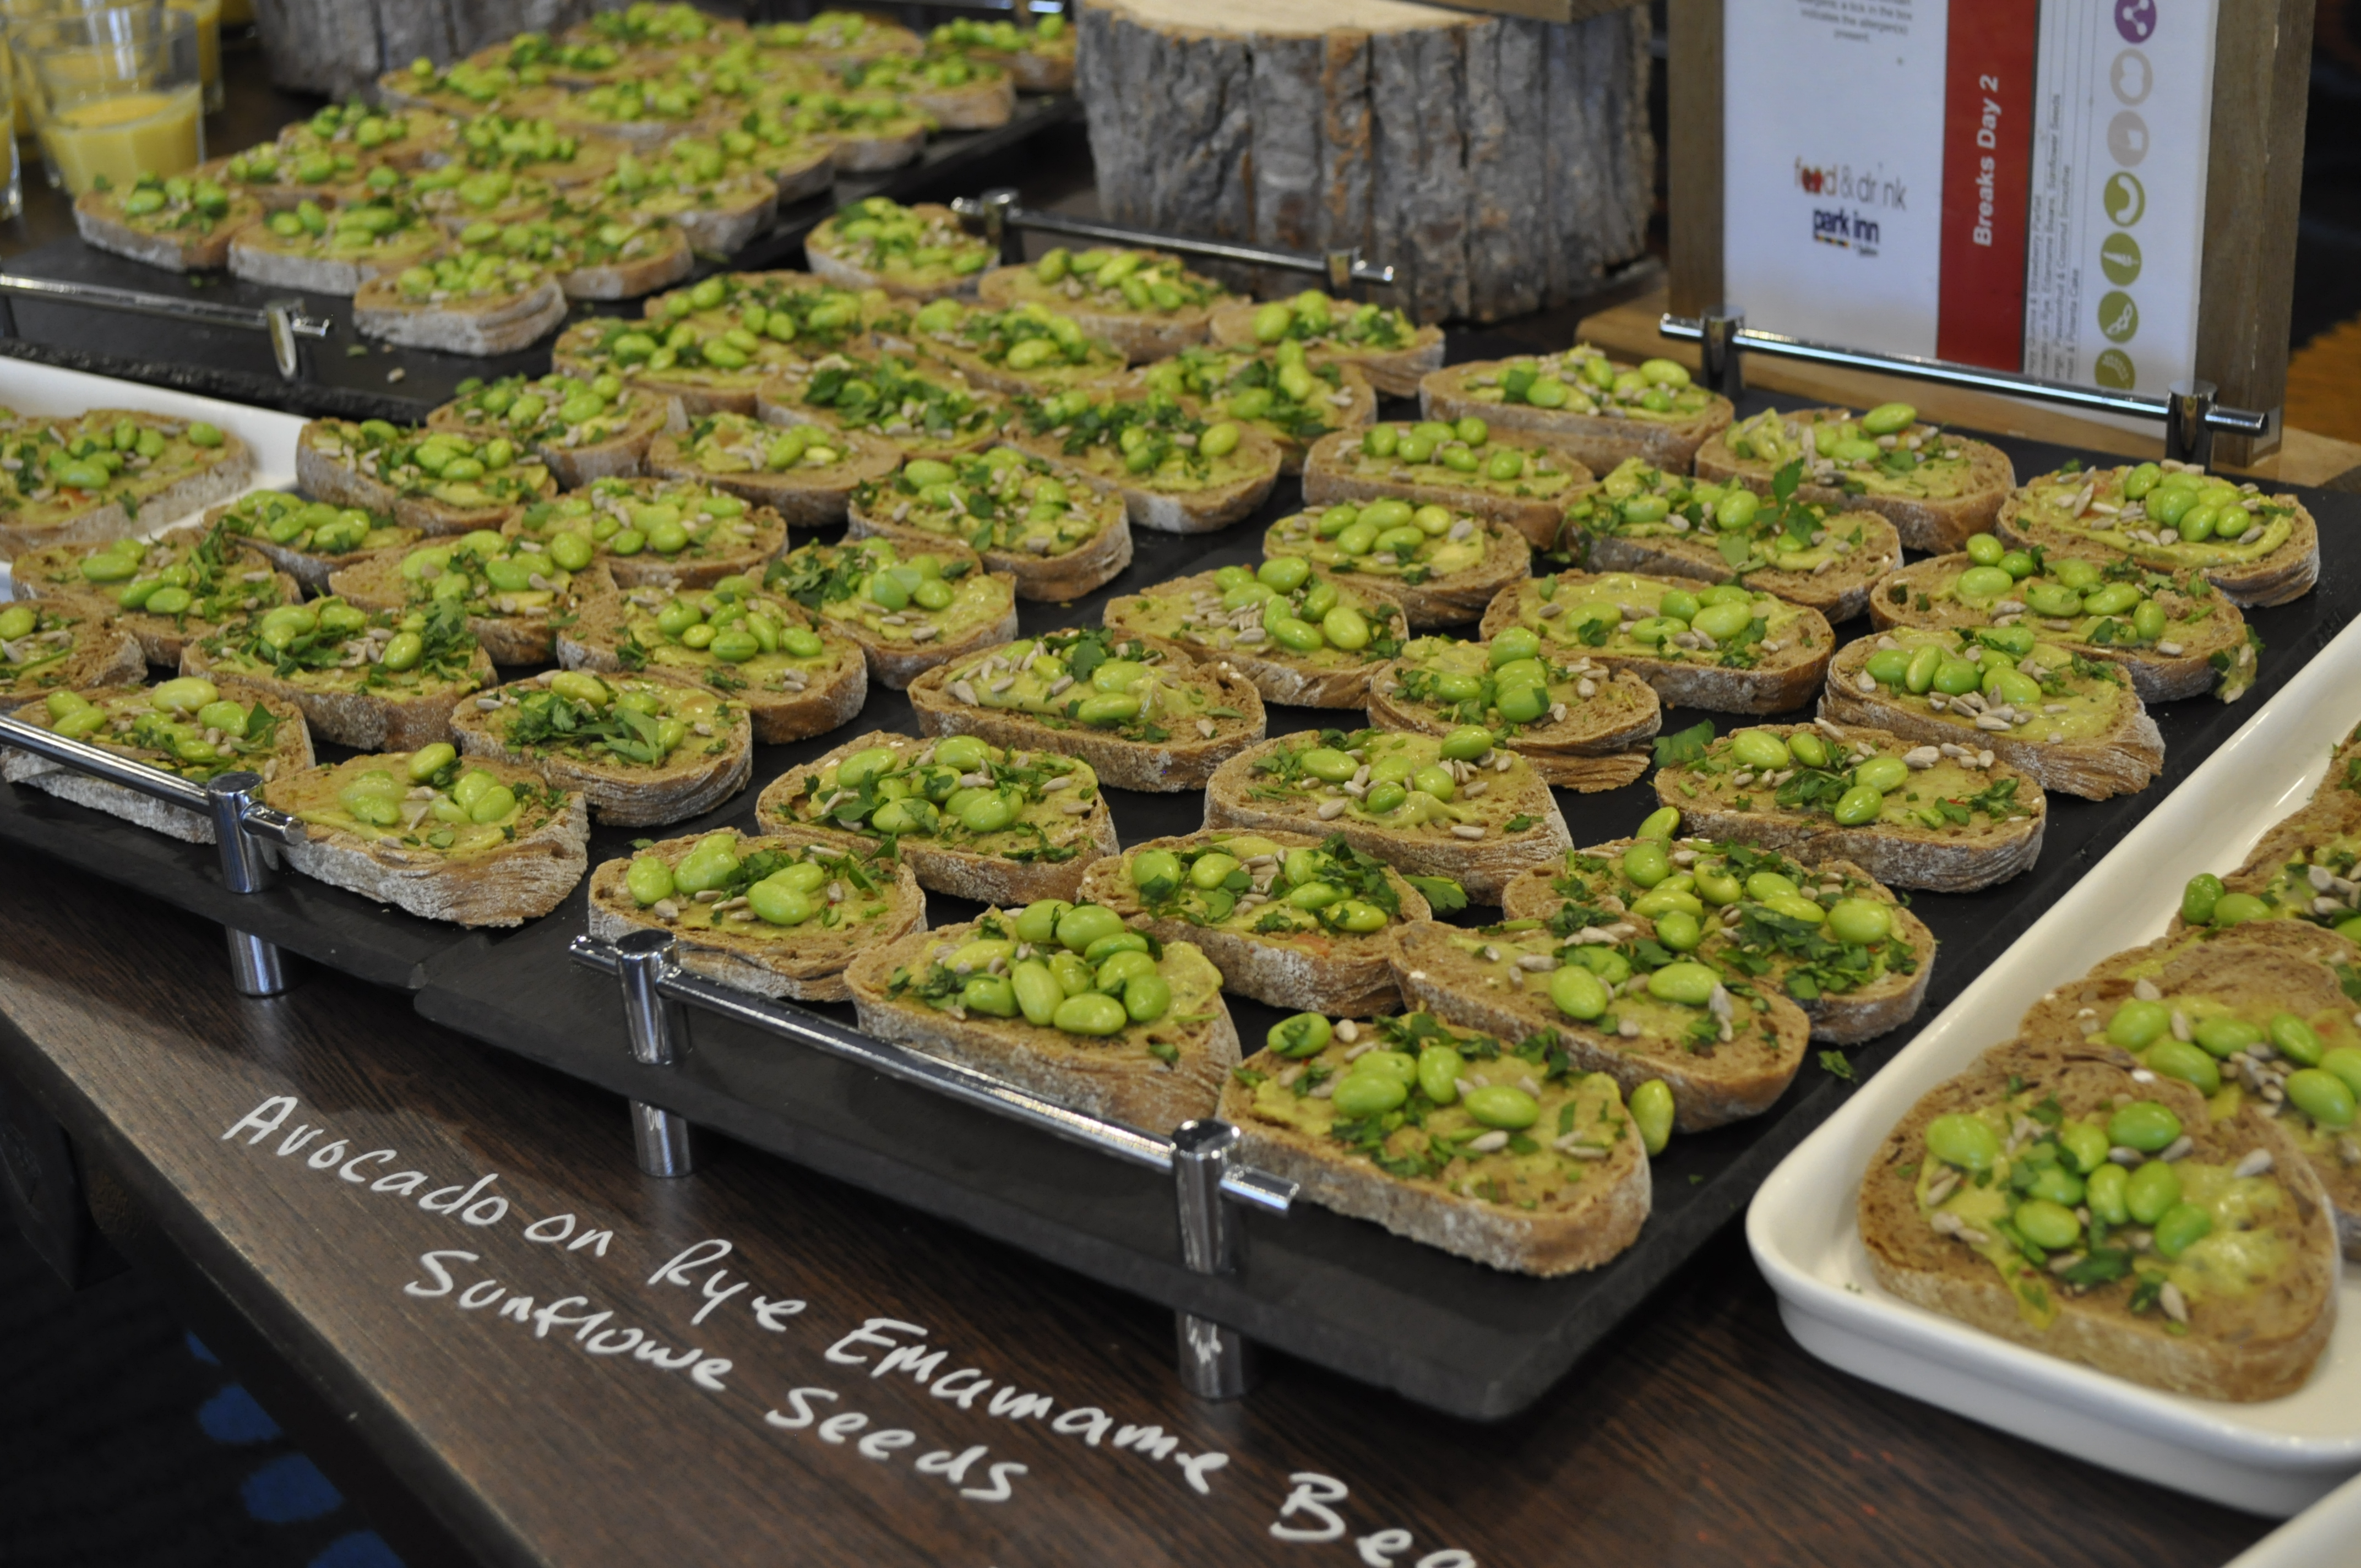 Food at the 2018 conference